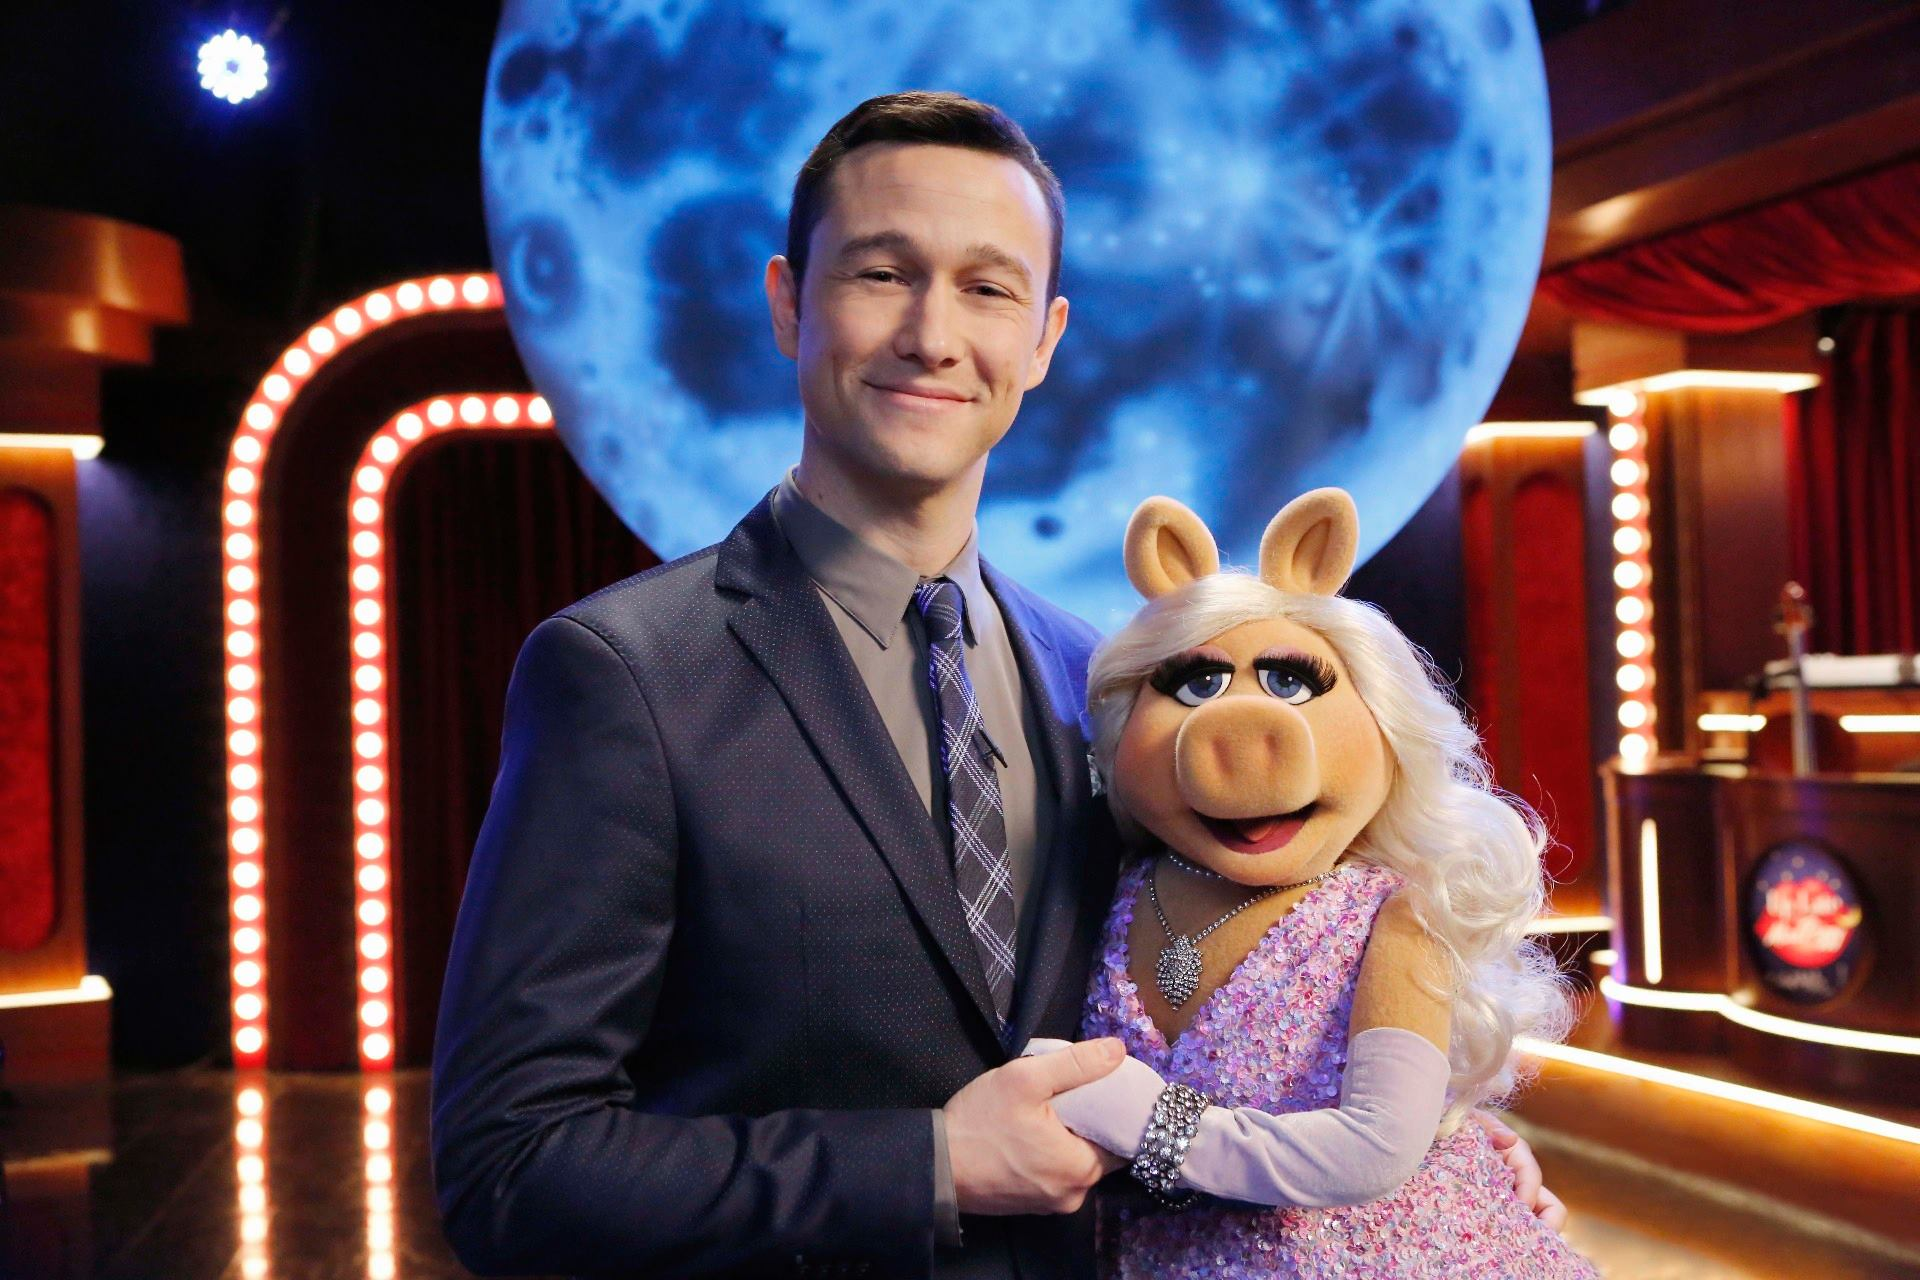 Photo Credit: (ABC/Vivian ZInk) JOSEPH GORDON-LEVITT, MISS PIGGY